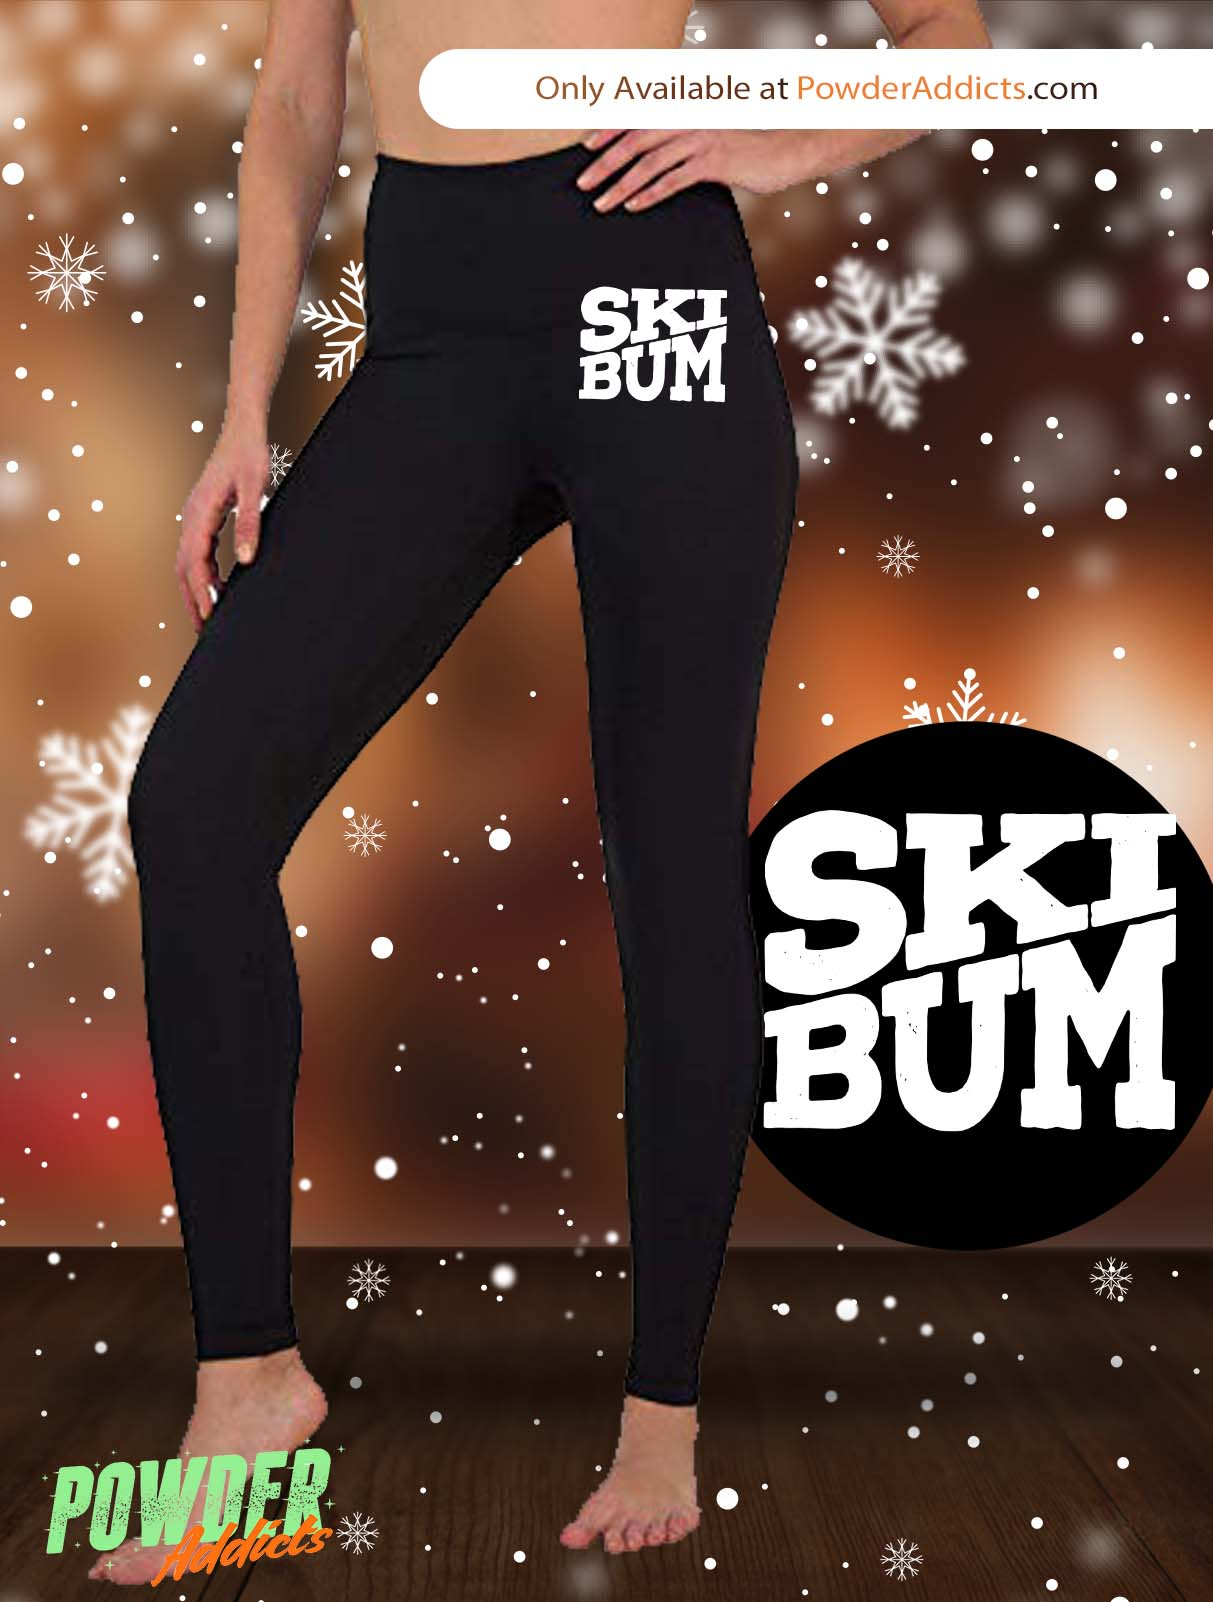 Ski Bum Women's Embroidered Leggings - Powderaddicts